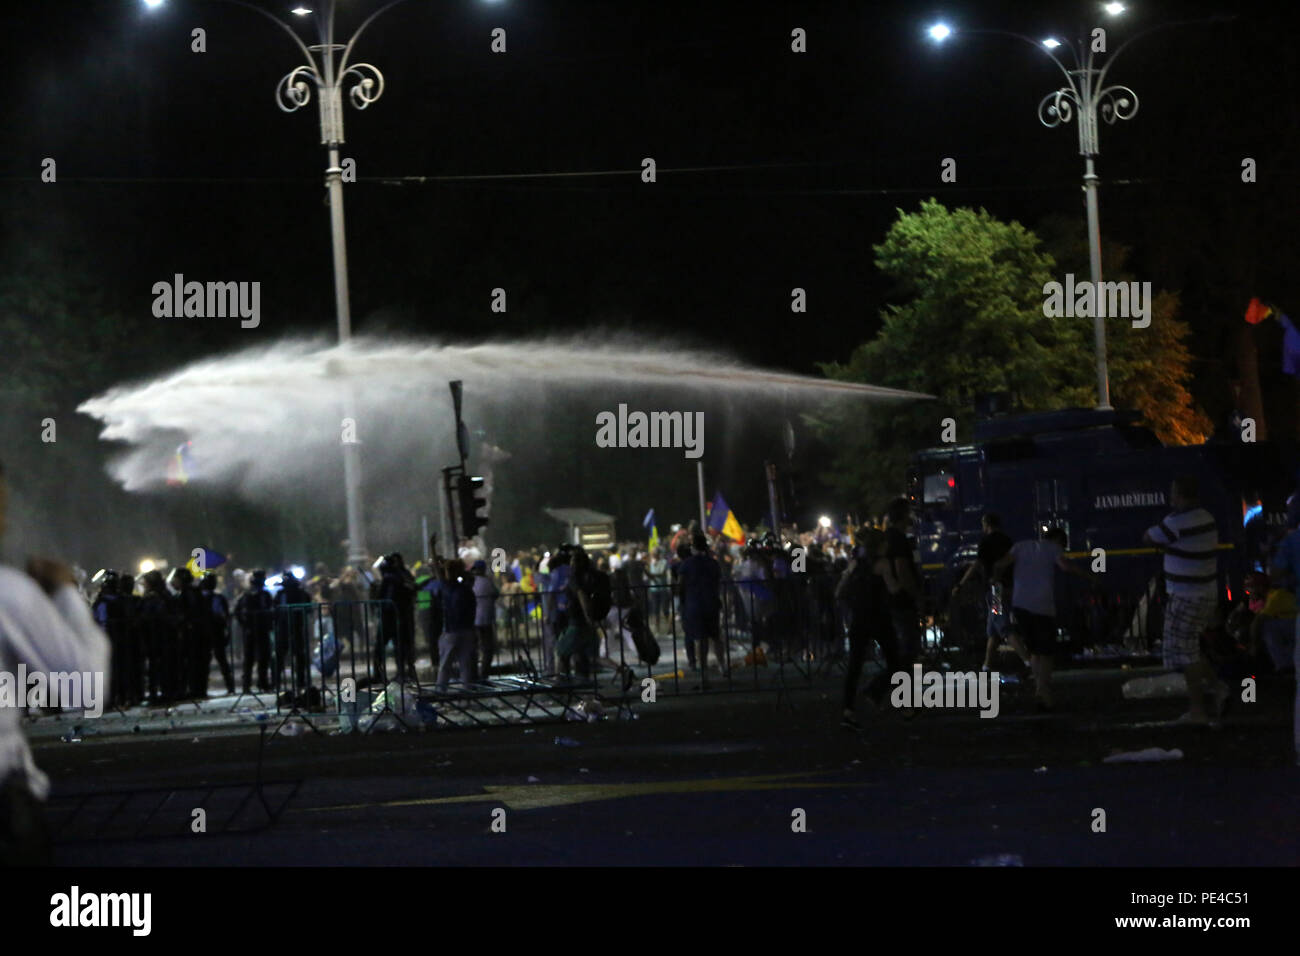 Bucharest, Romania - August 10, 2018:  Water cannons are used during the violent anti-government protest in Bucharest. - Stock Image